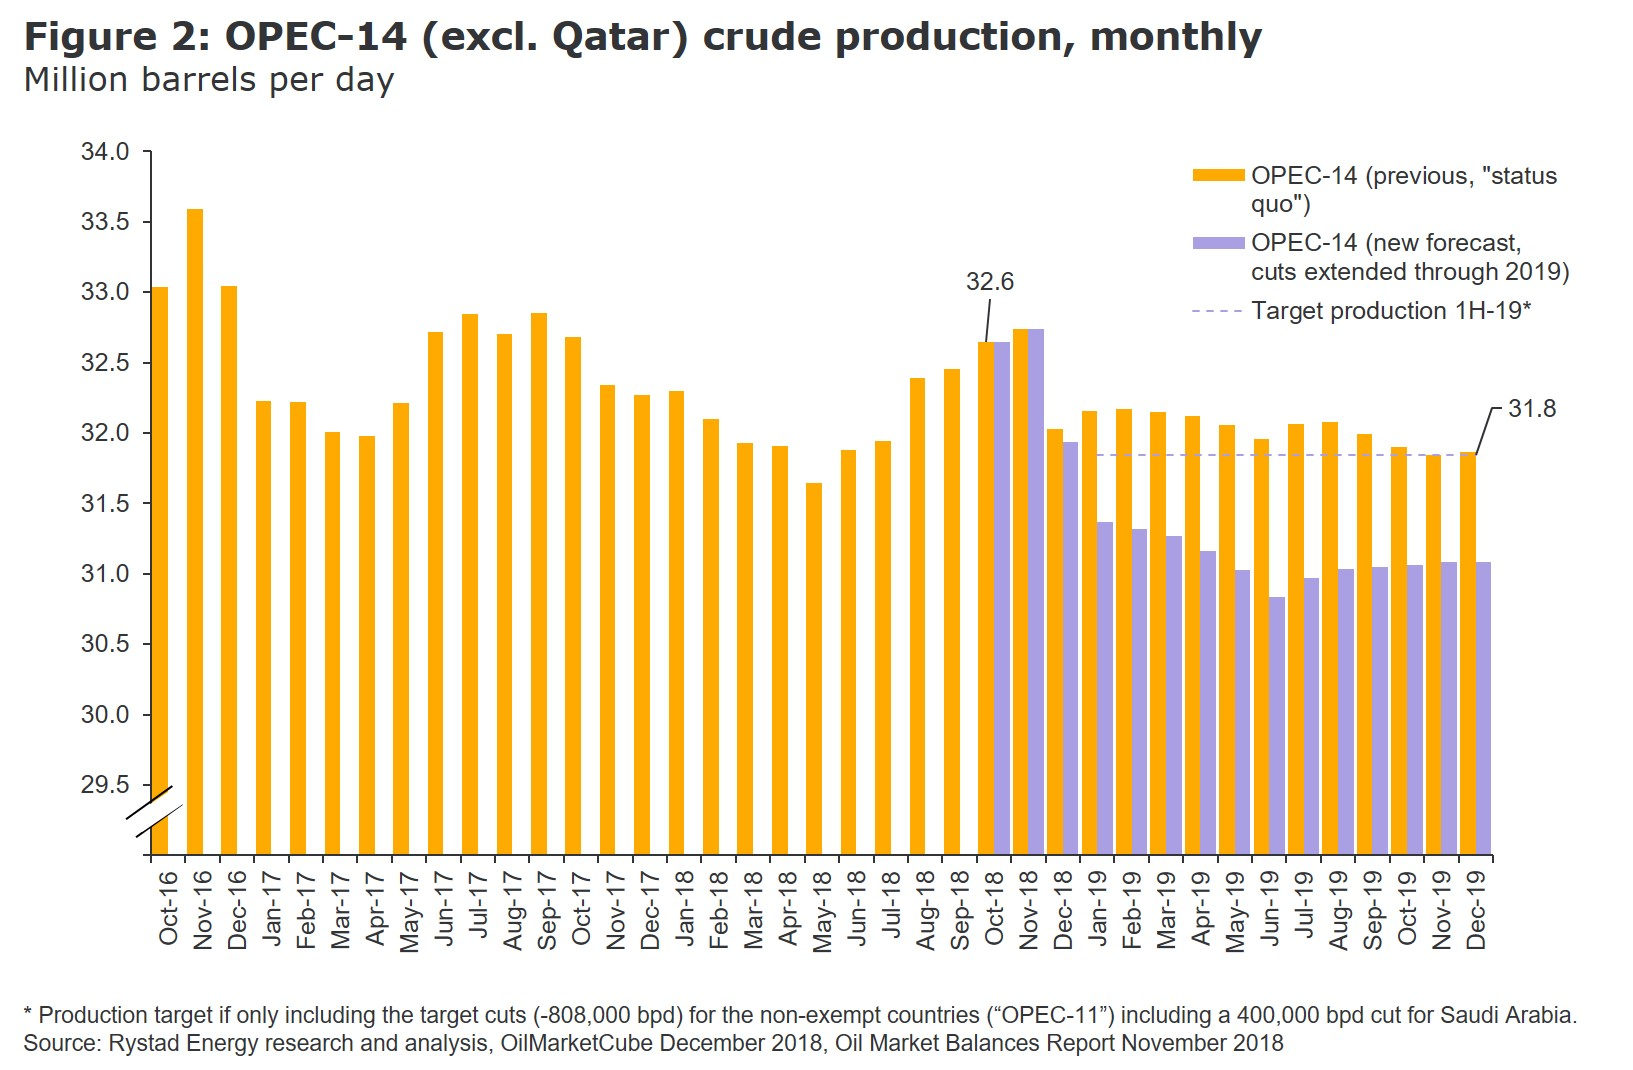 A bar chart showing the monthly OPEC-14 crude production in million barrels per day from 2016 to 2019, Rystad Energy OilMarketCube